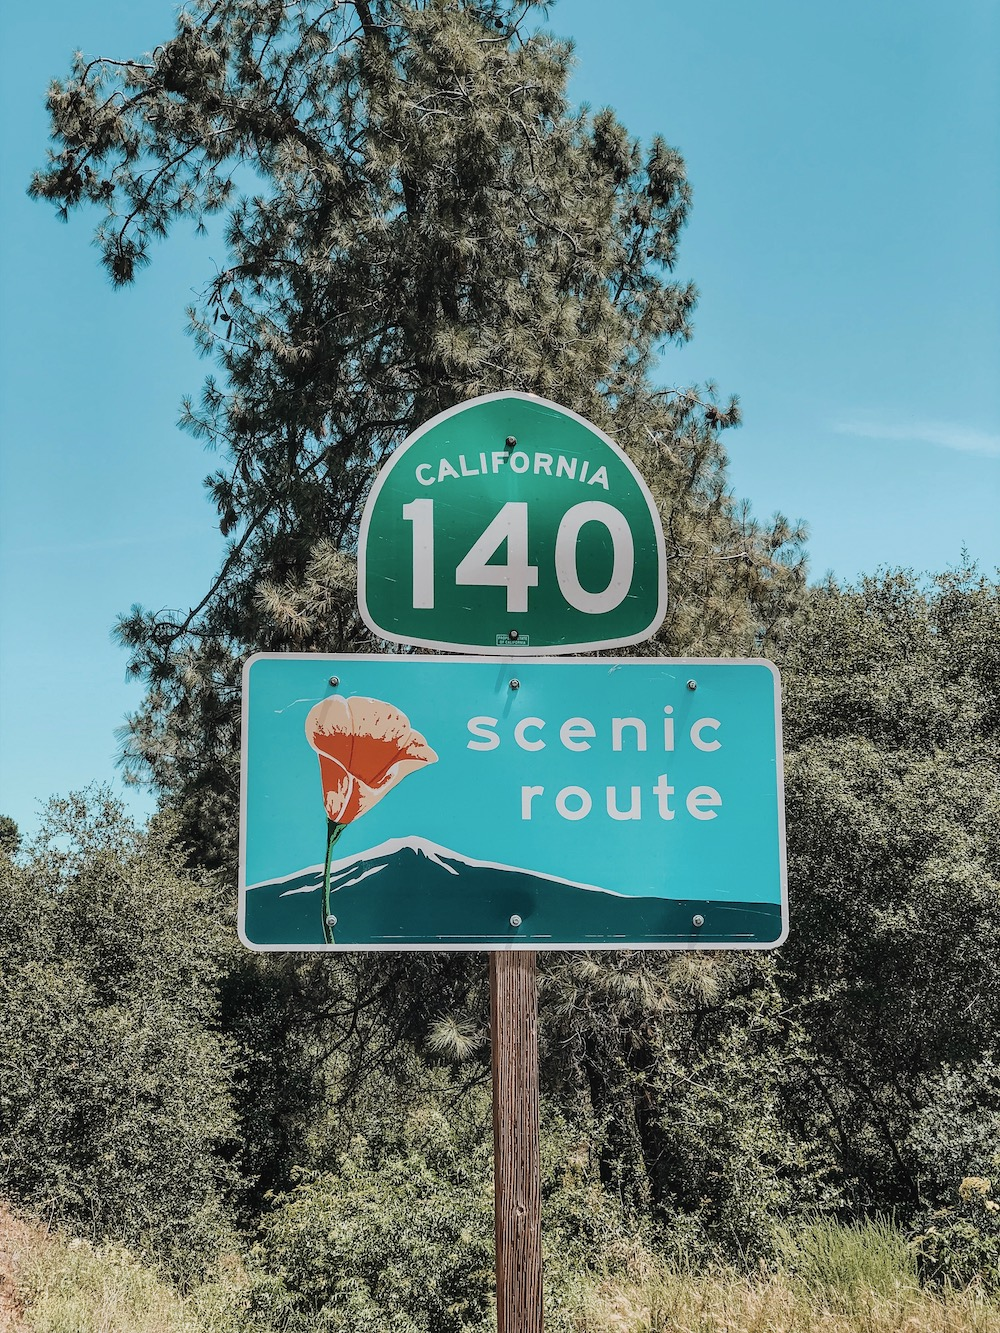 California 140 Scenic Route - Yosemite National Park | Cedar + Surf